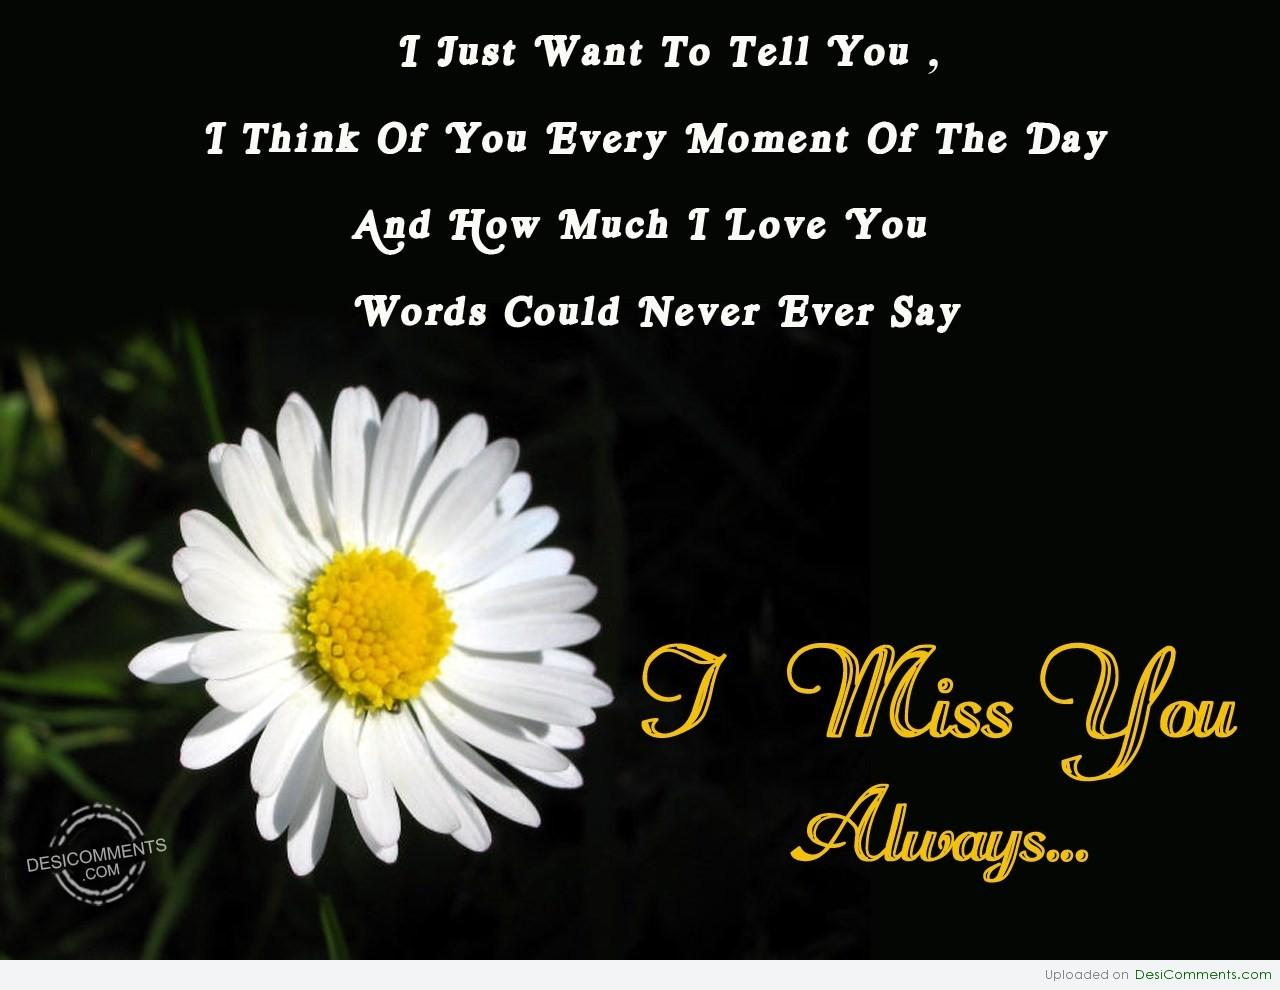 Missing You Quotes Pictures, Images, Graphics For Facebook